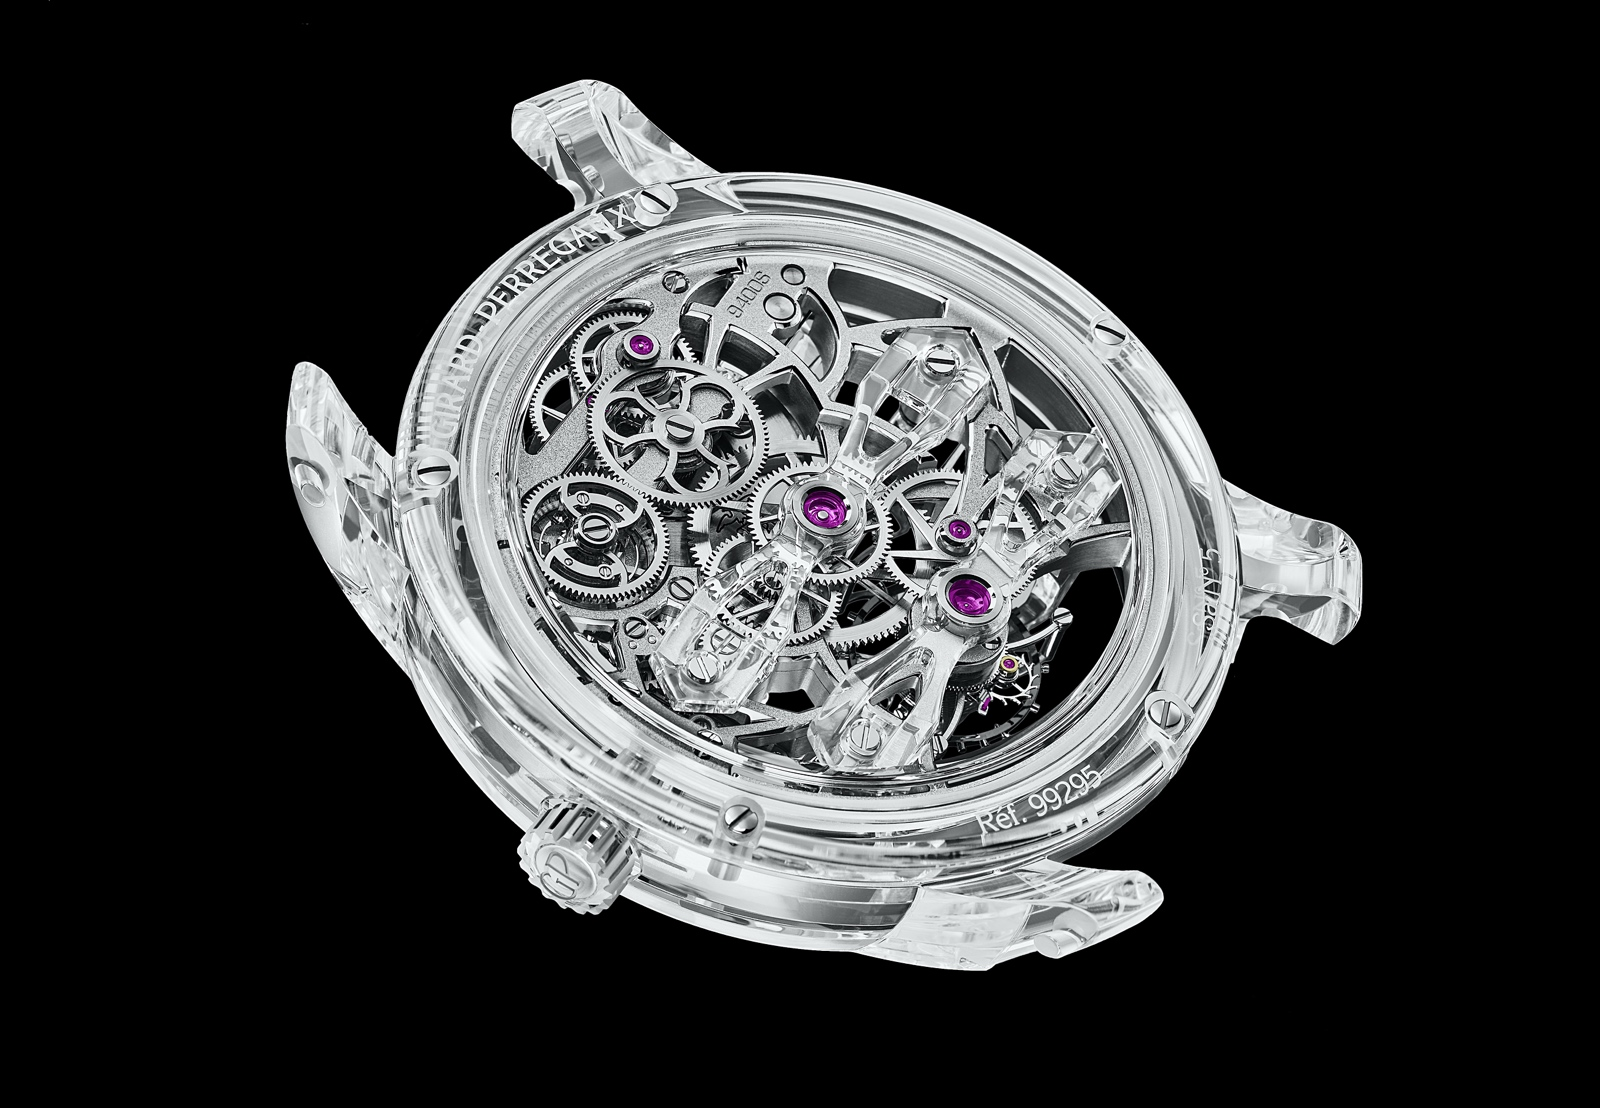 Girard-Perregaux Quasar Light - calibre